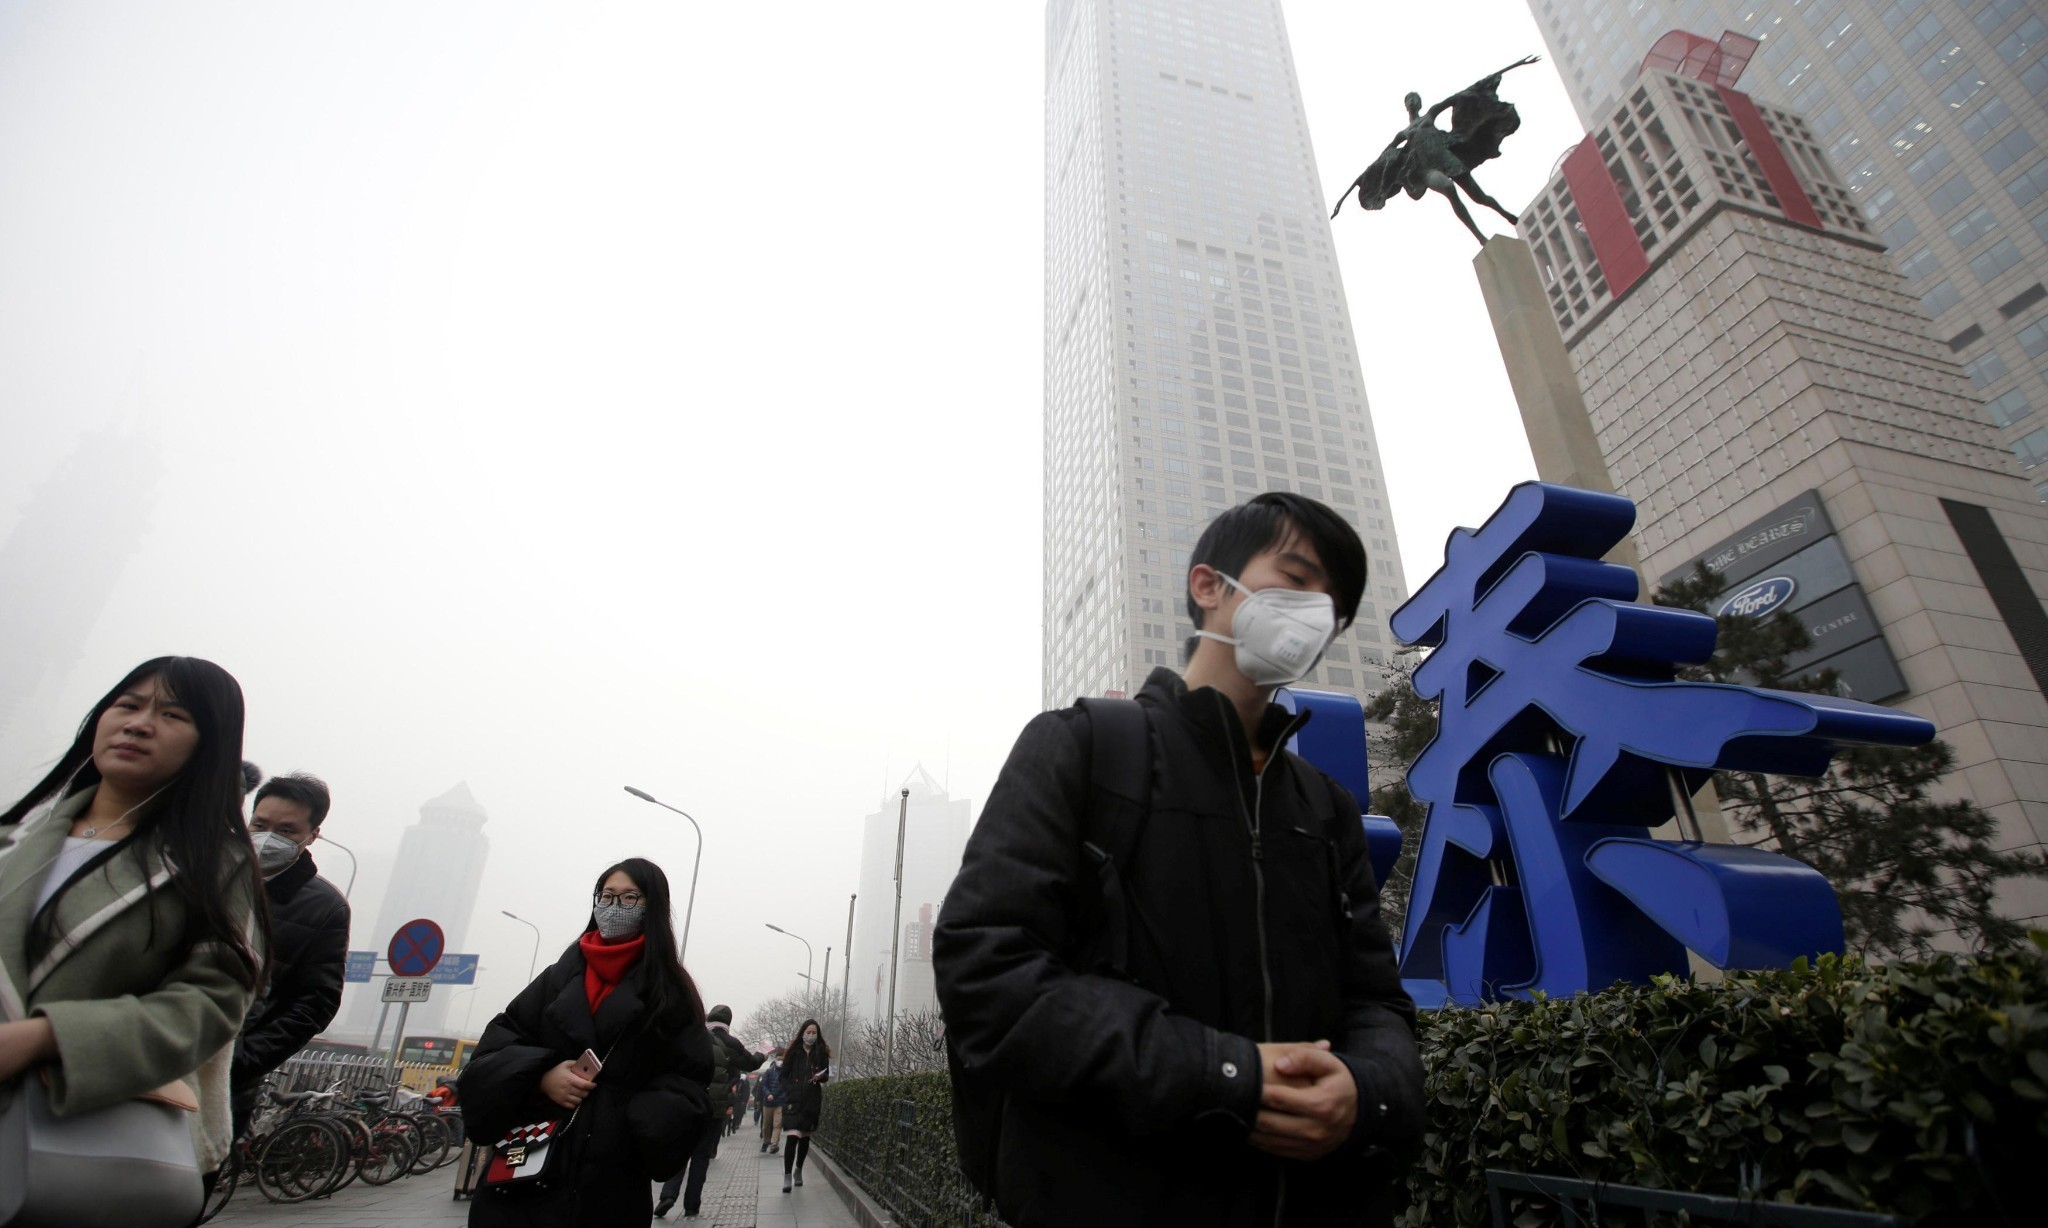 Smog refugees flee Chinese cities as 'airpocalypse' blights half a billion